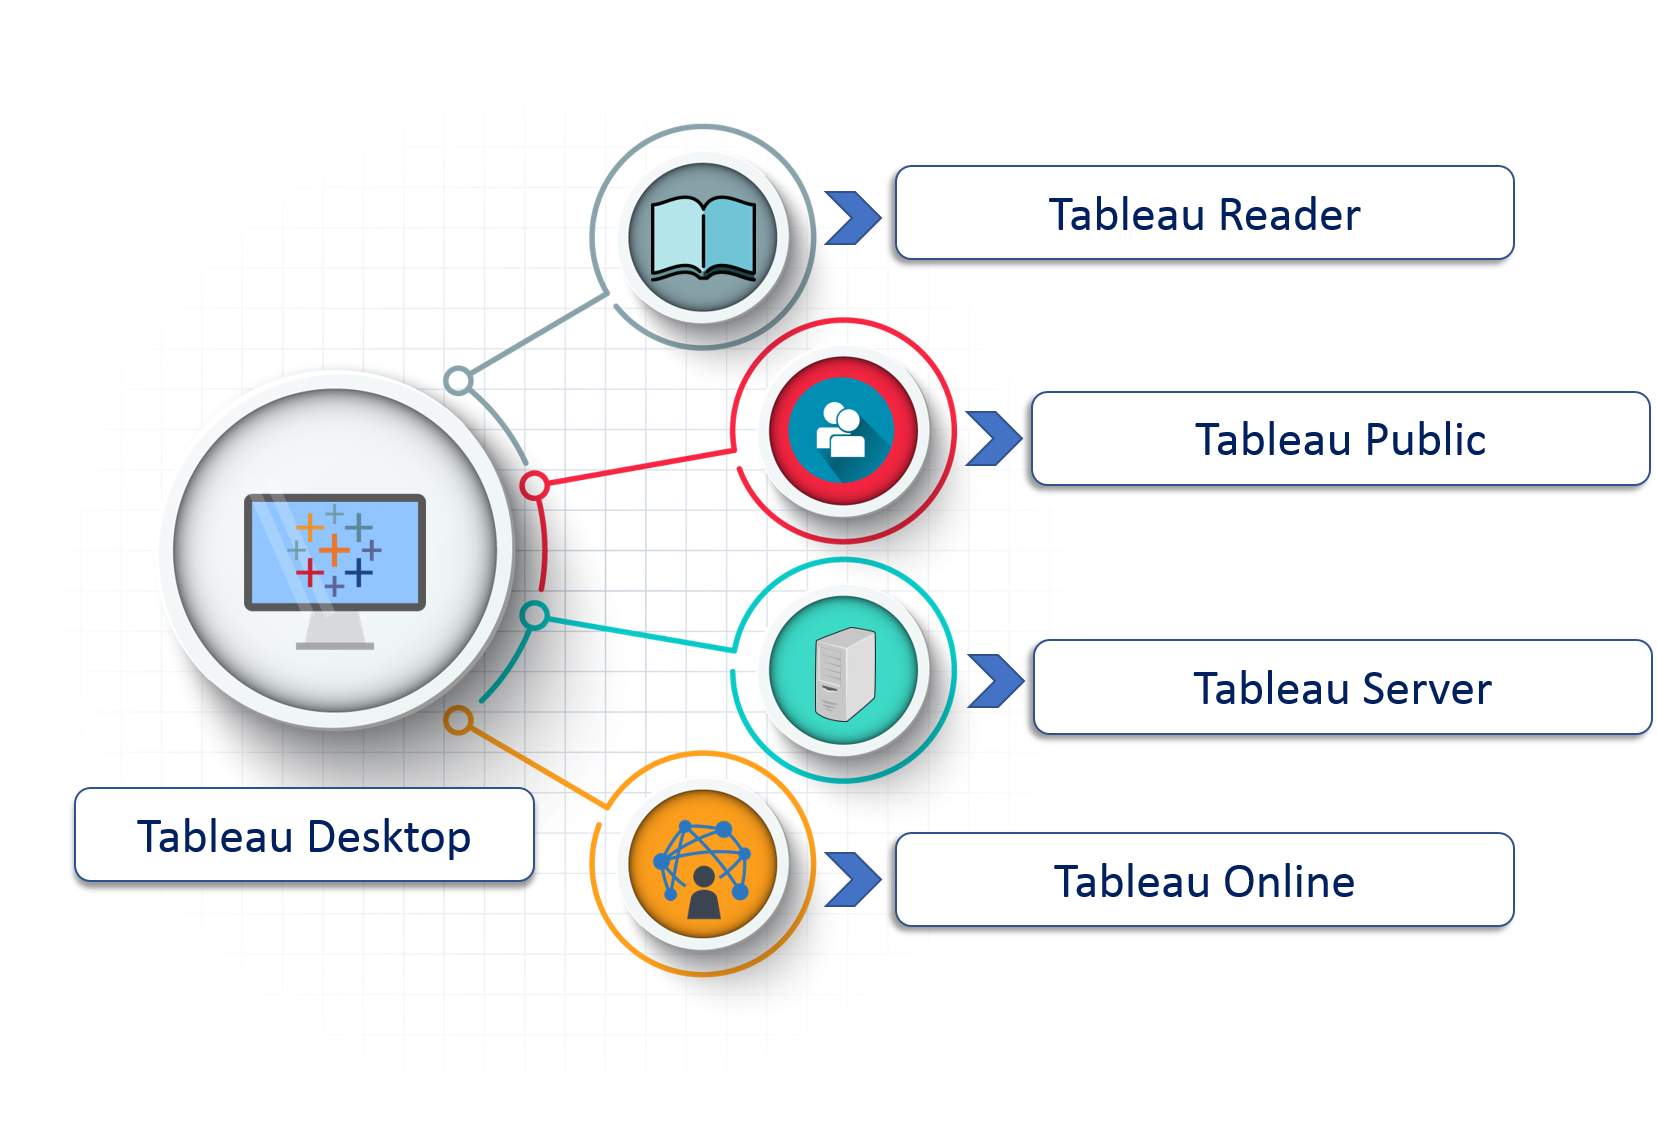 What are differences between Tableau's Desktop/Server/Public